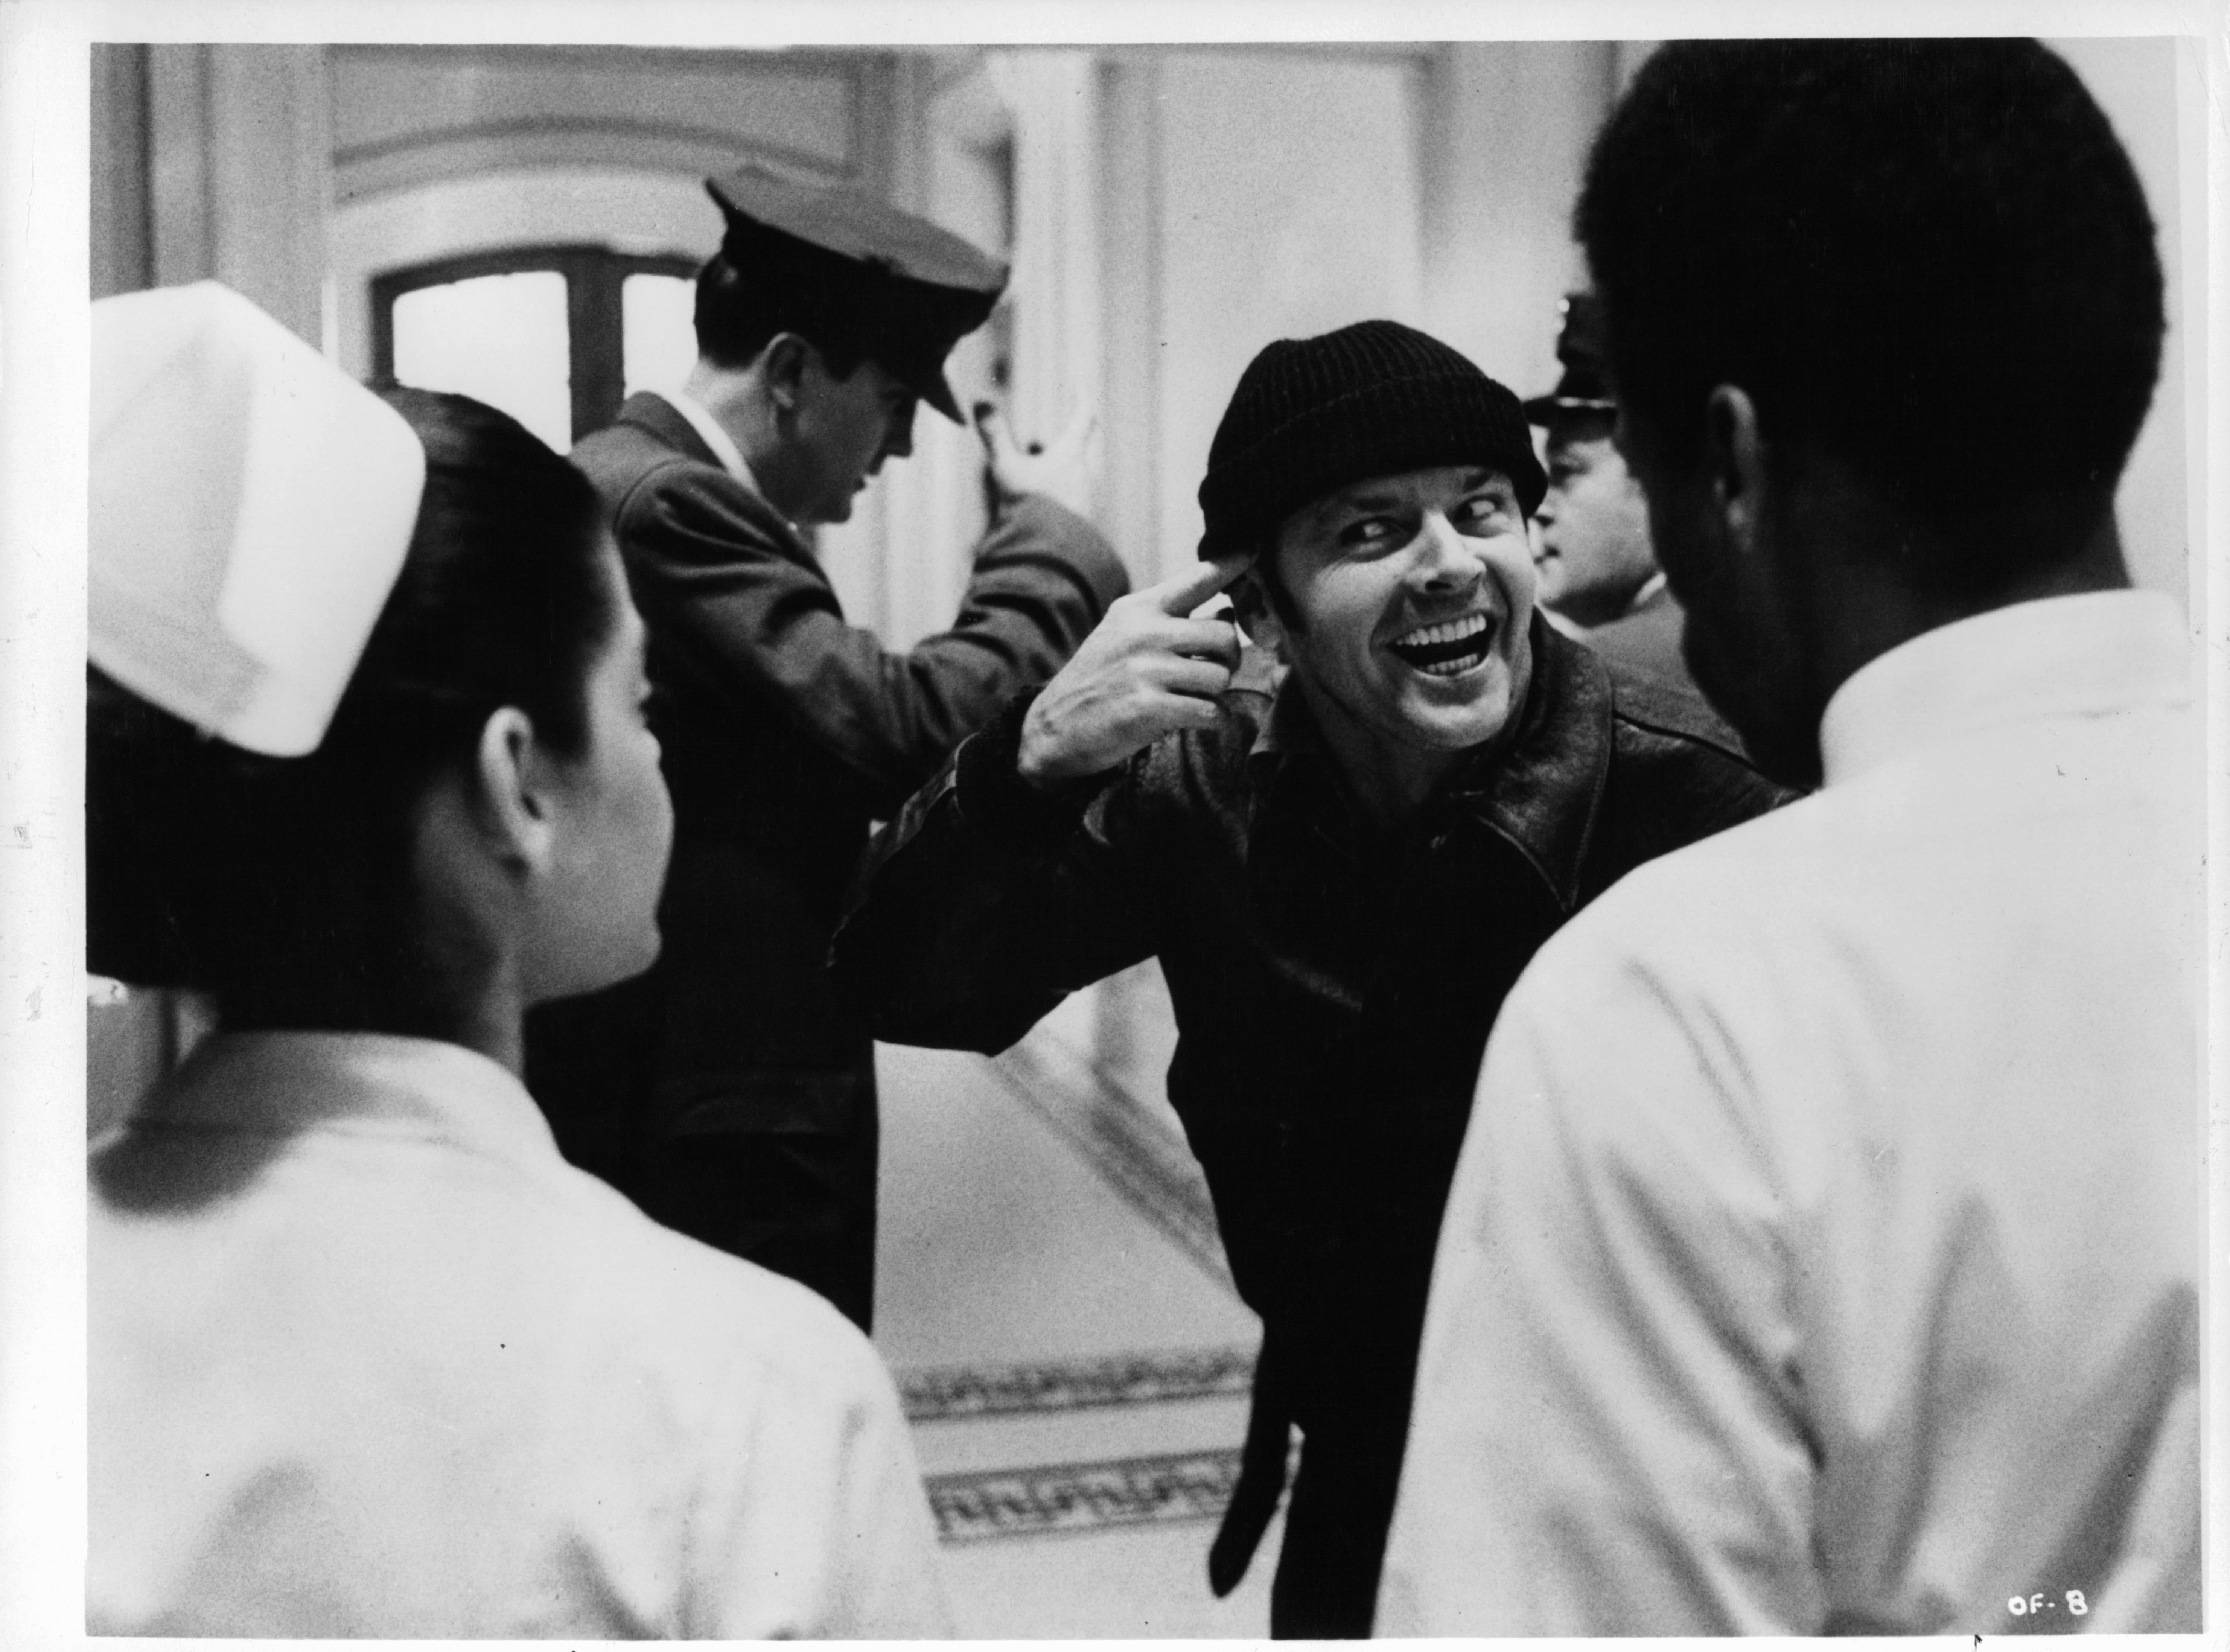 Jack Nicholson and Lan Fendors in One Flew Over the Cuckoo's Nest (1975)